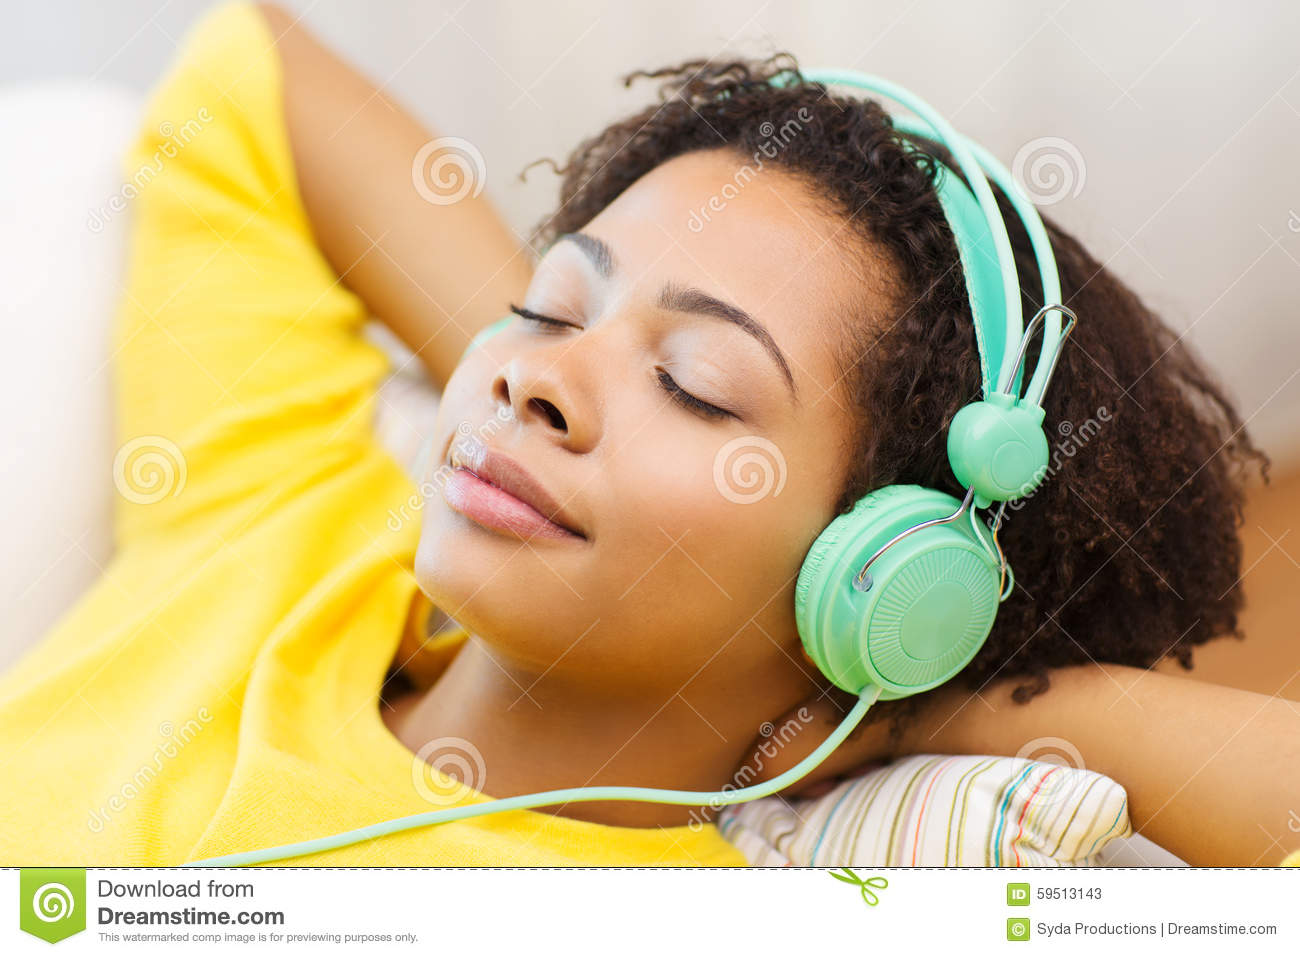 happy-woman-headphones-listening-to-music-people-technology-leisure-concept-african-american-young-sitting-sofa-59513143.jpg